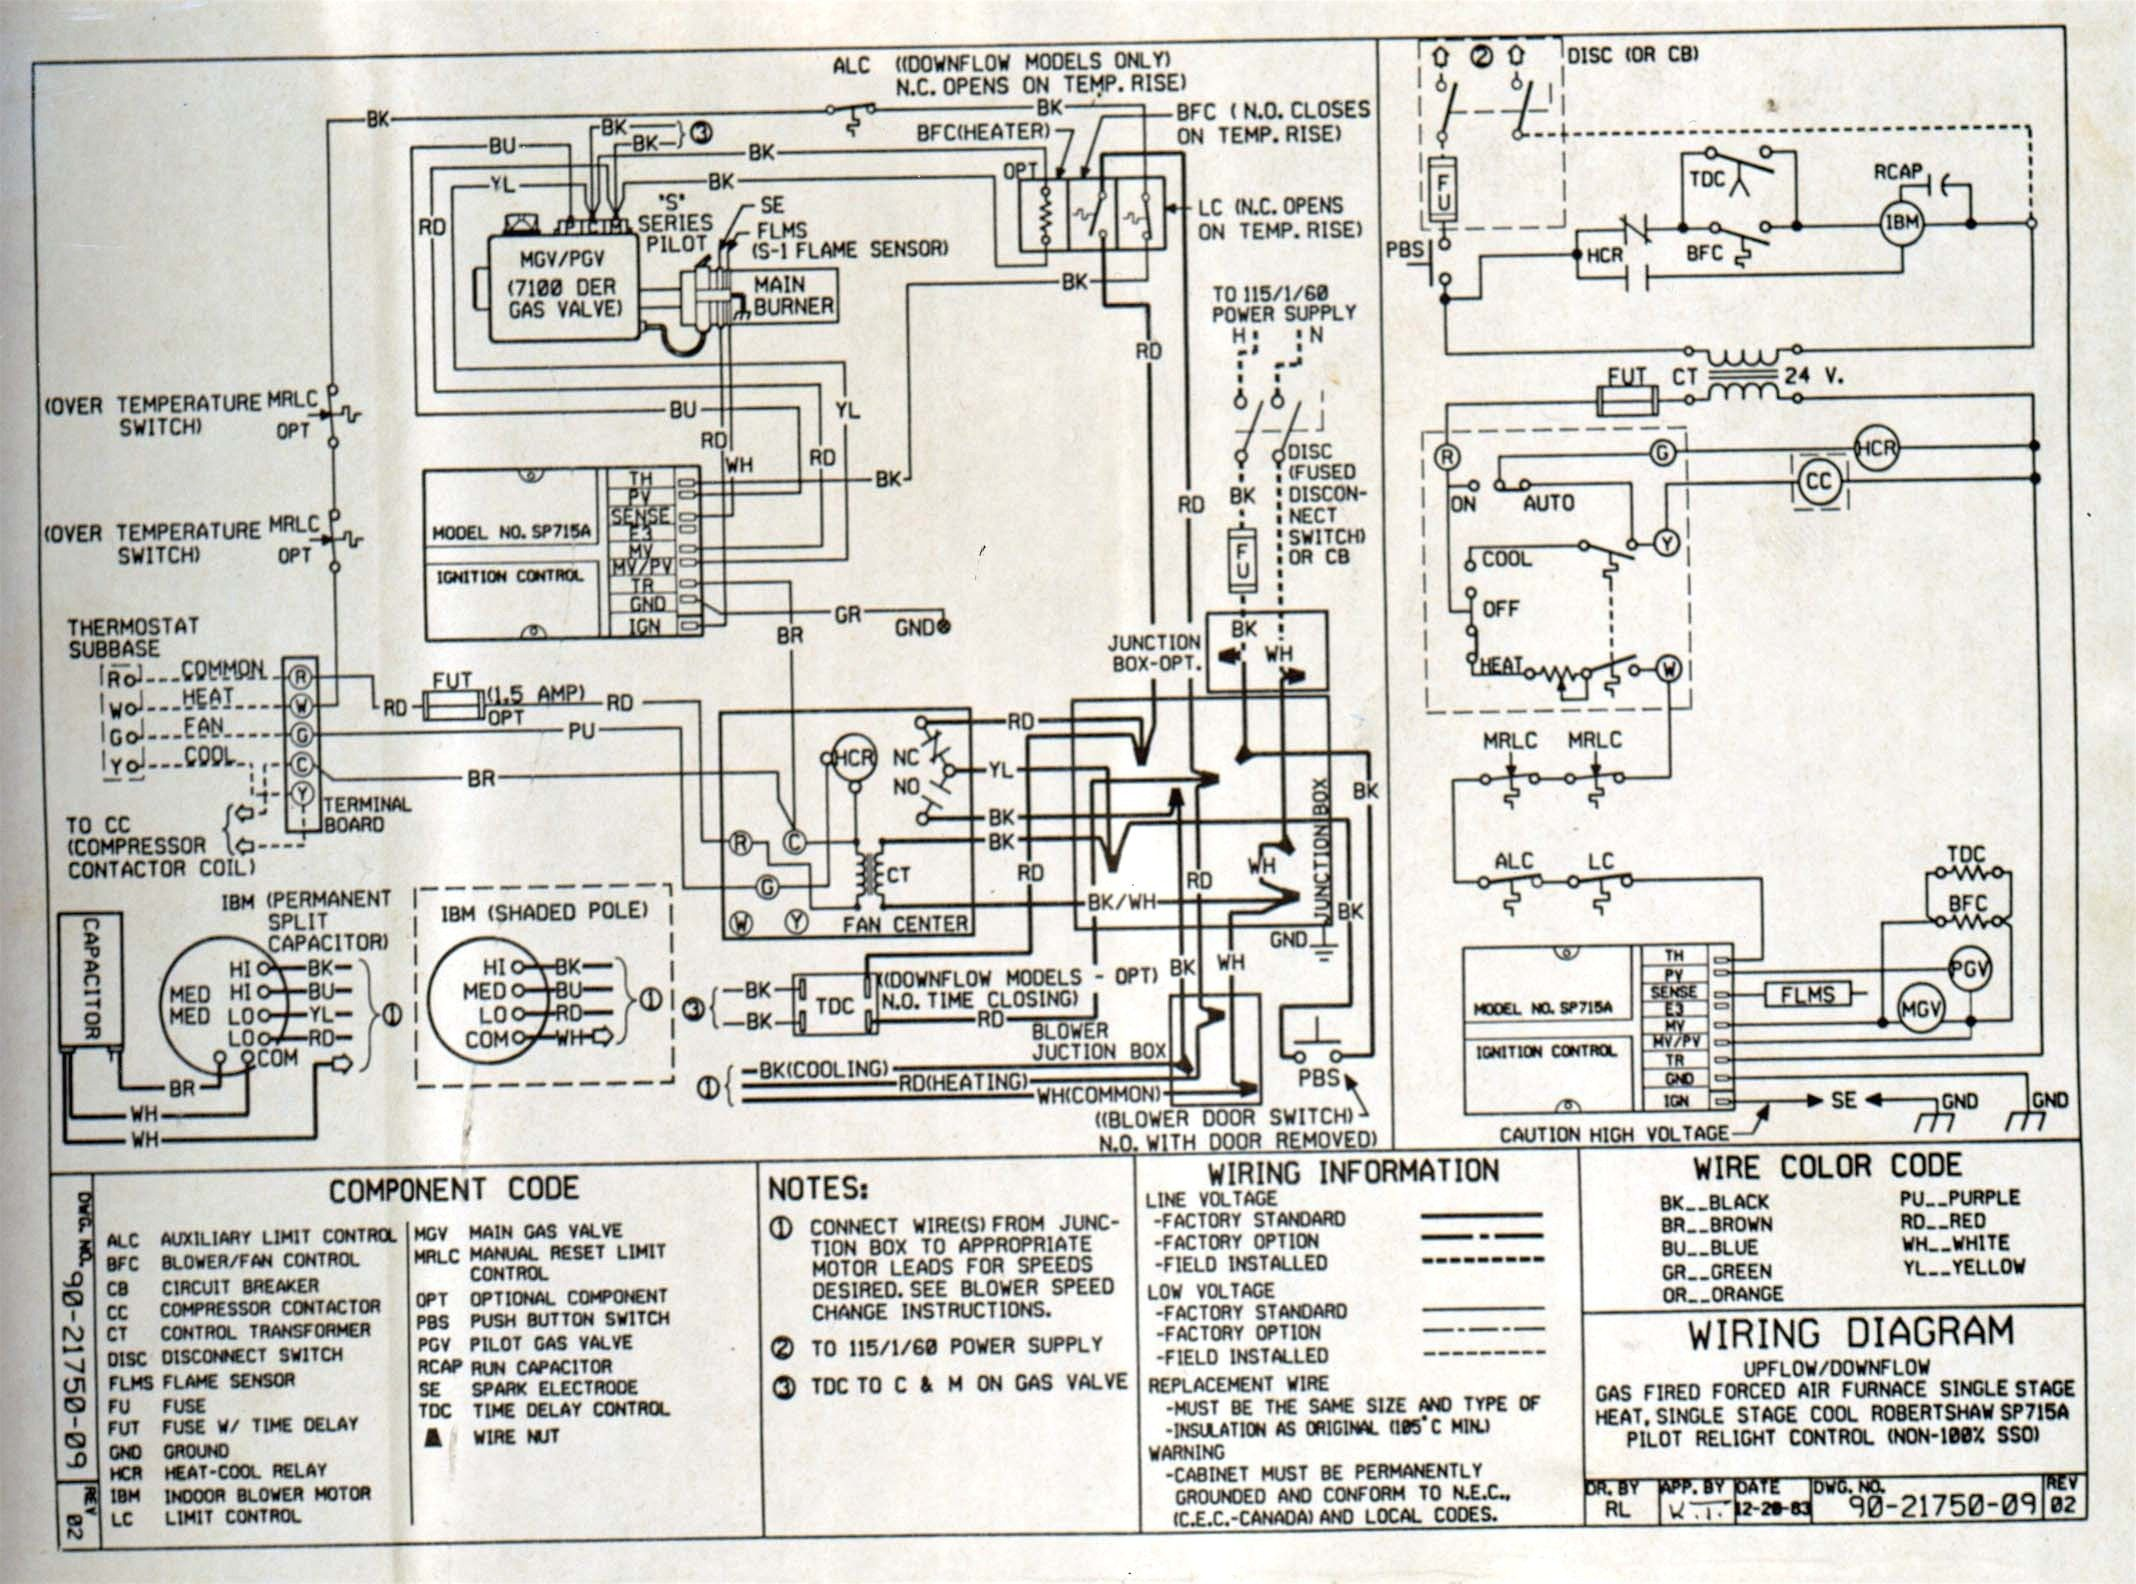 payne air conditioners schematic wiring diagram data today payne furnace thermostat wiring diagram payne a c unit [ 2136 x 1584 Pixel ]